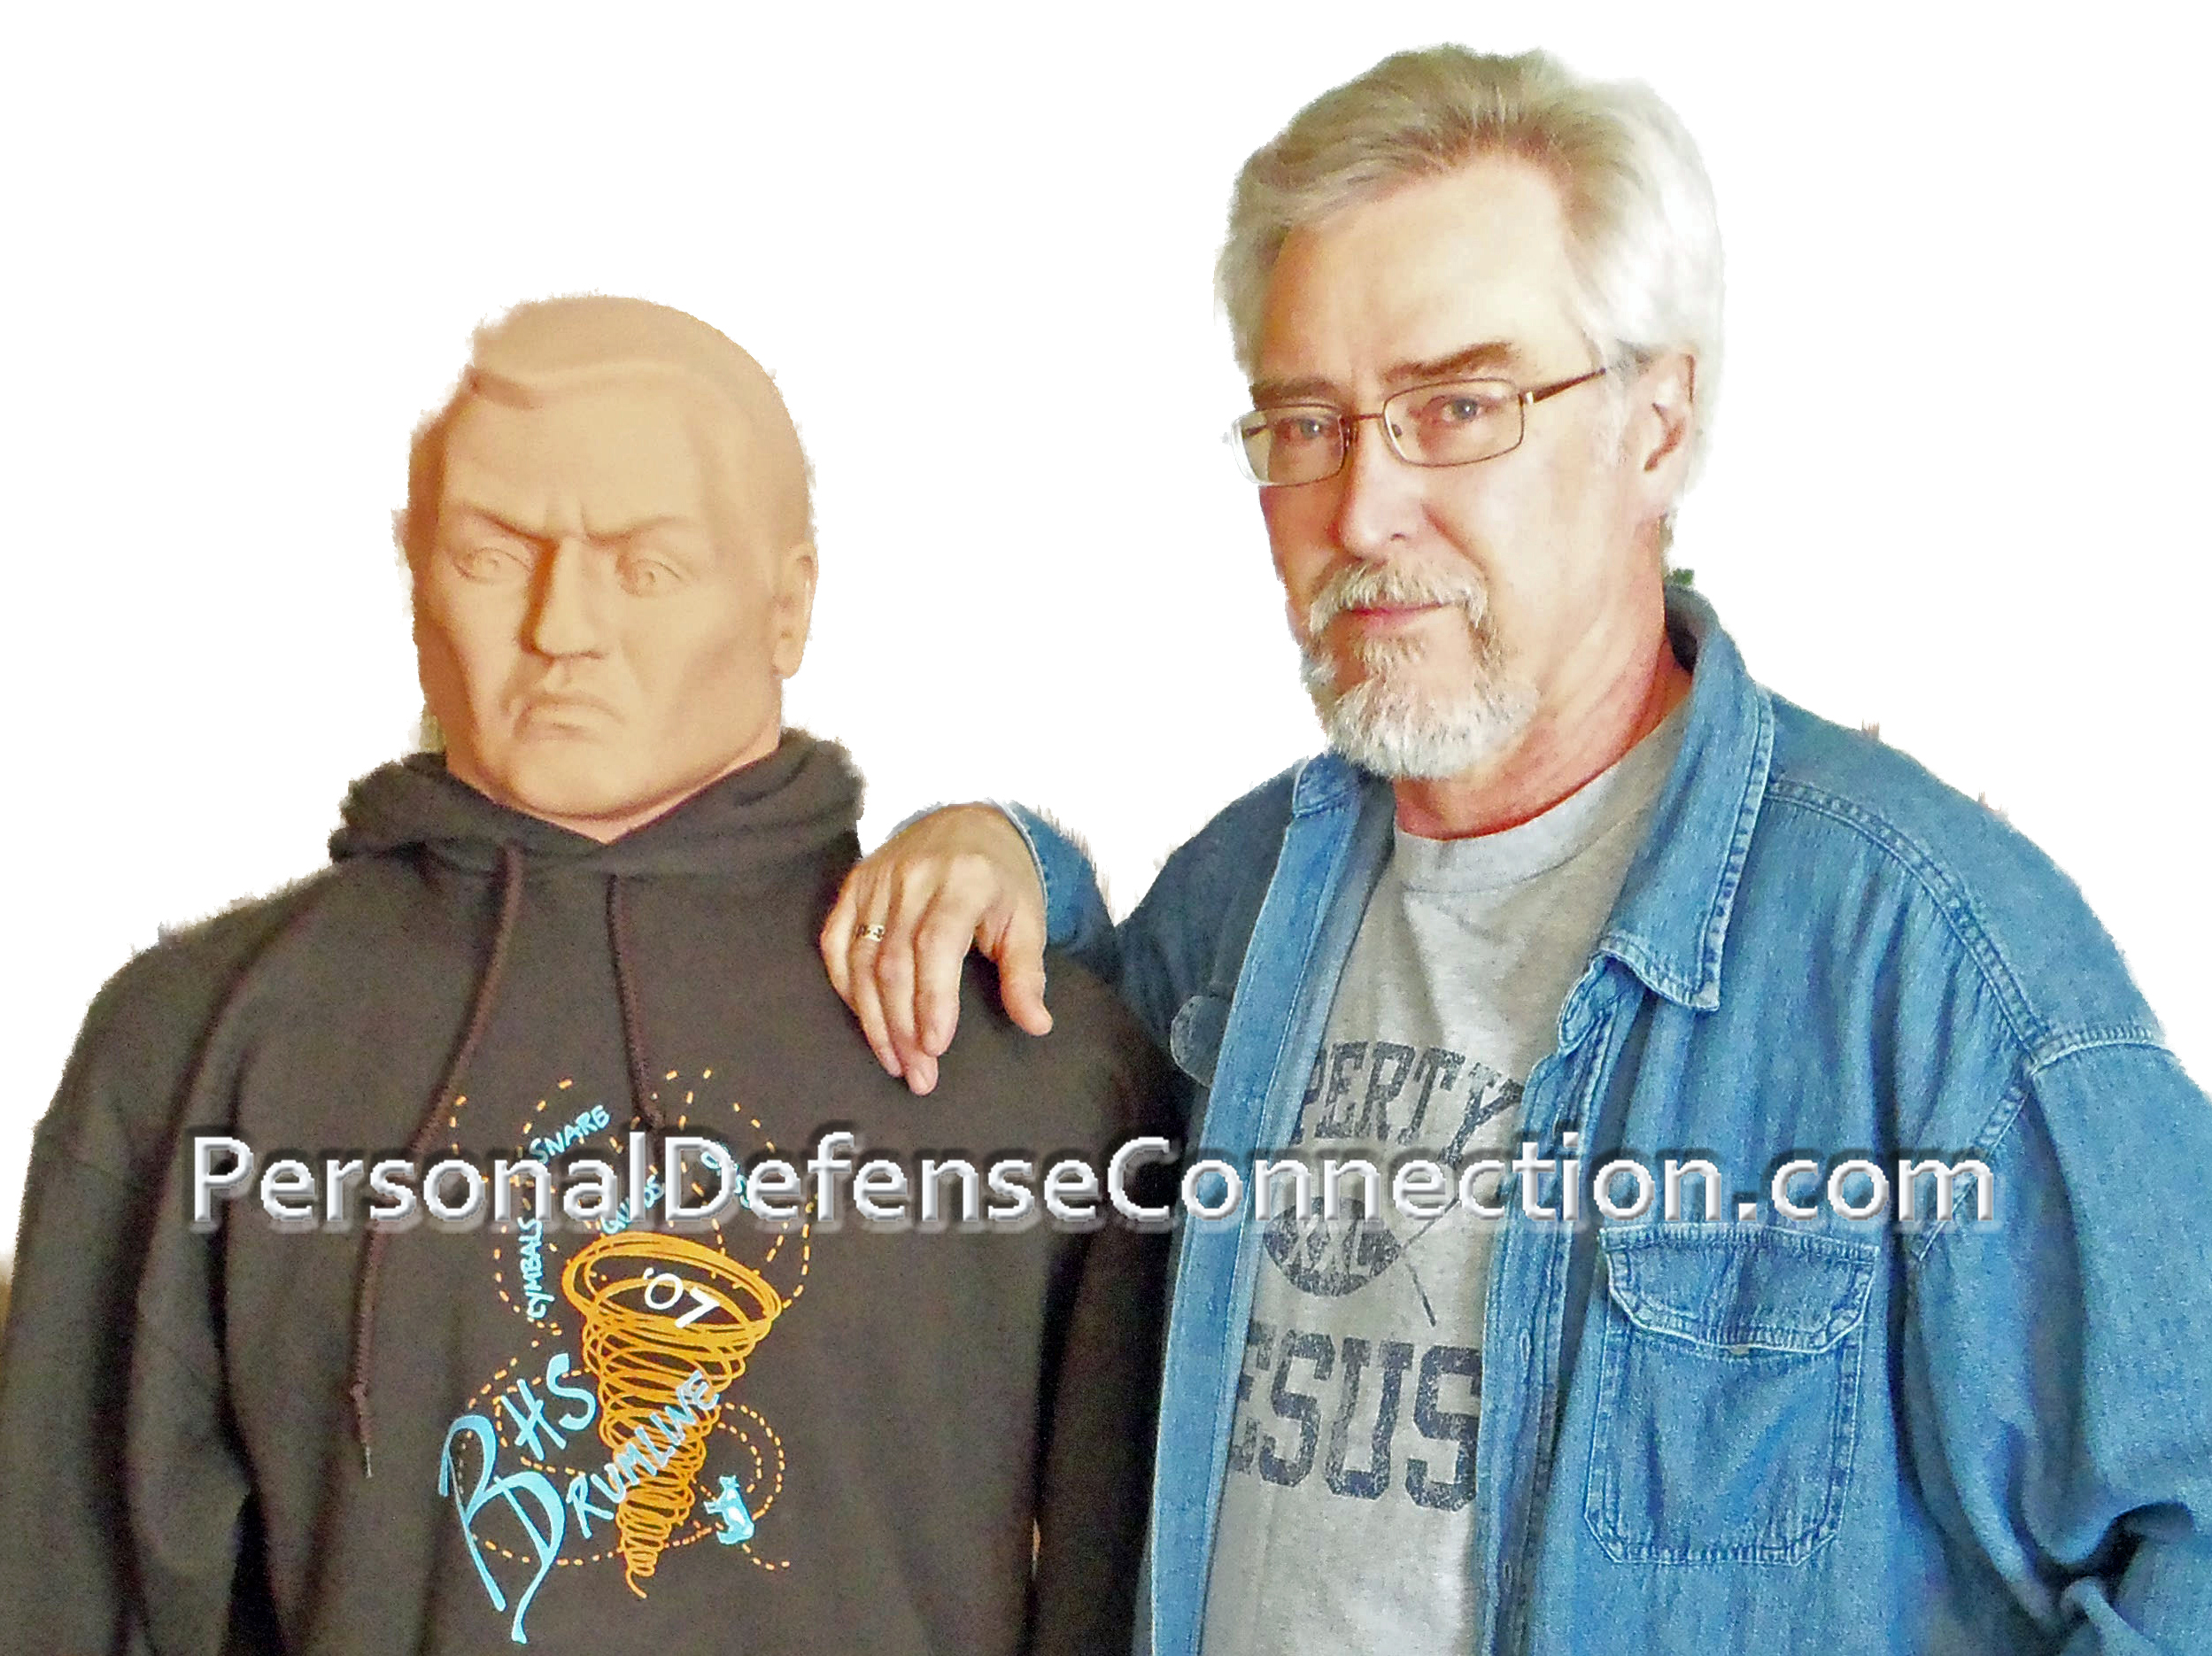 Owner and Instructor, Dave, posing with his Self Defense Class assistant, TED.